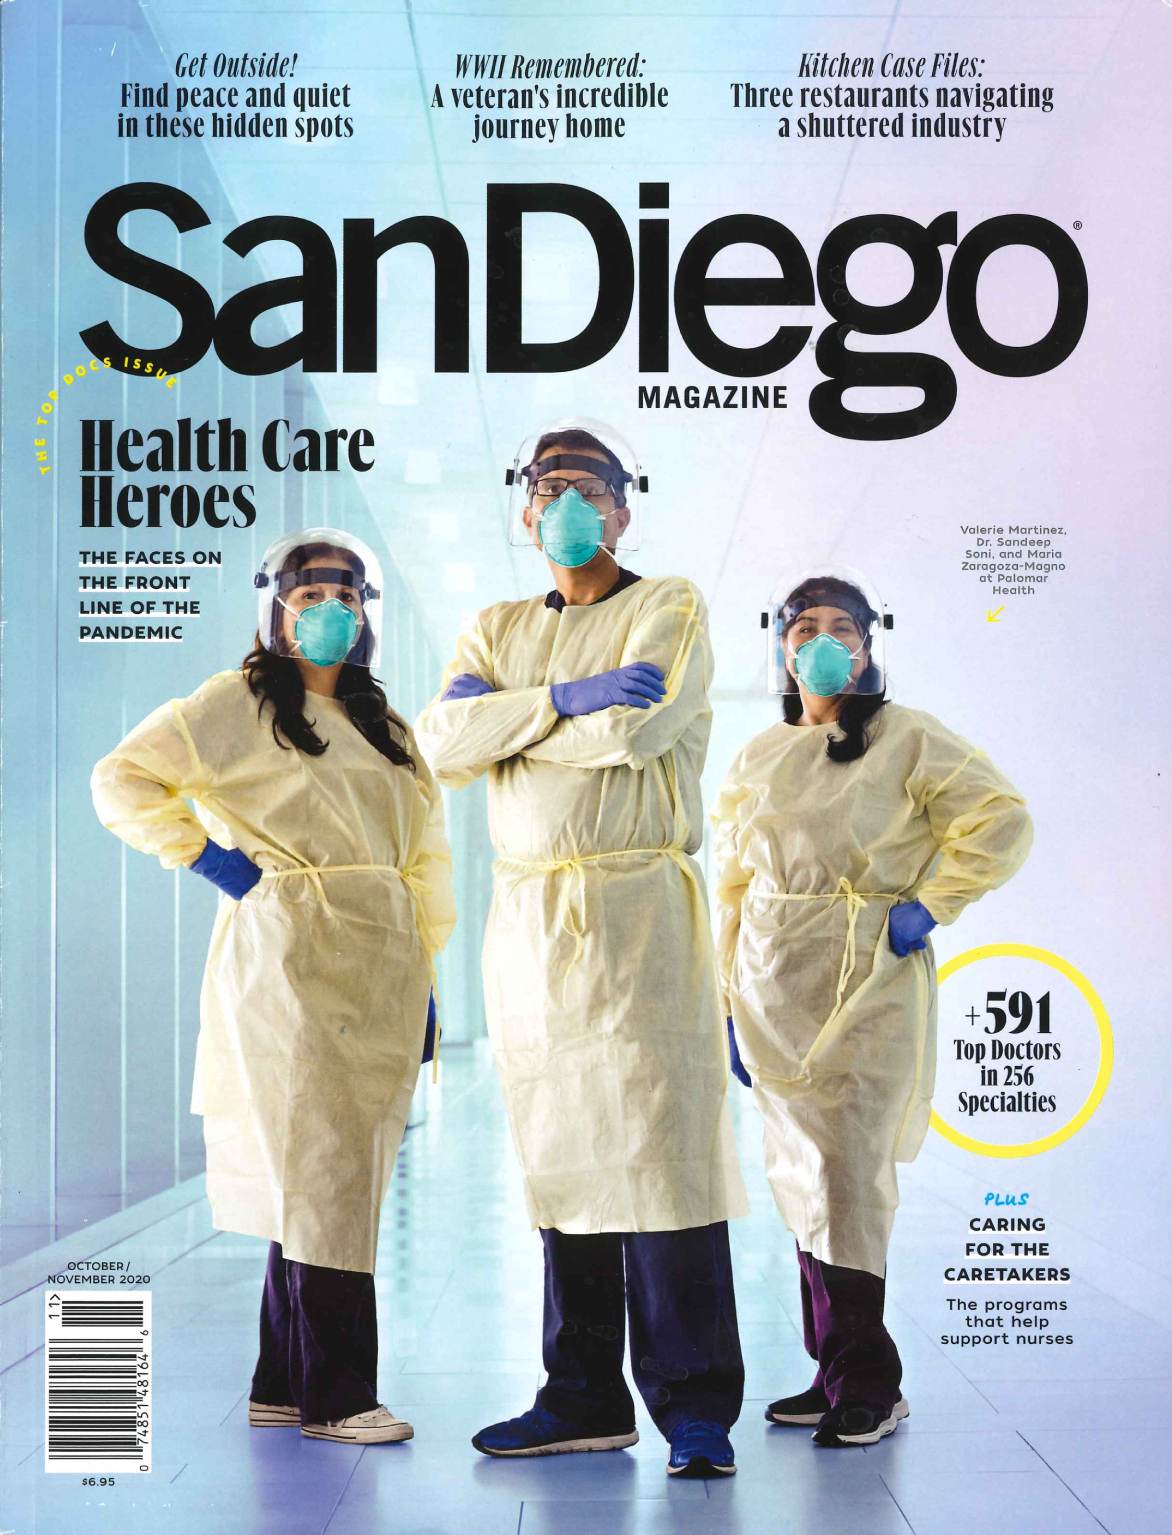 San Diego Magazine featuring Dr. Perry Mansfield